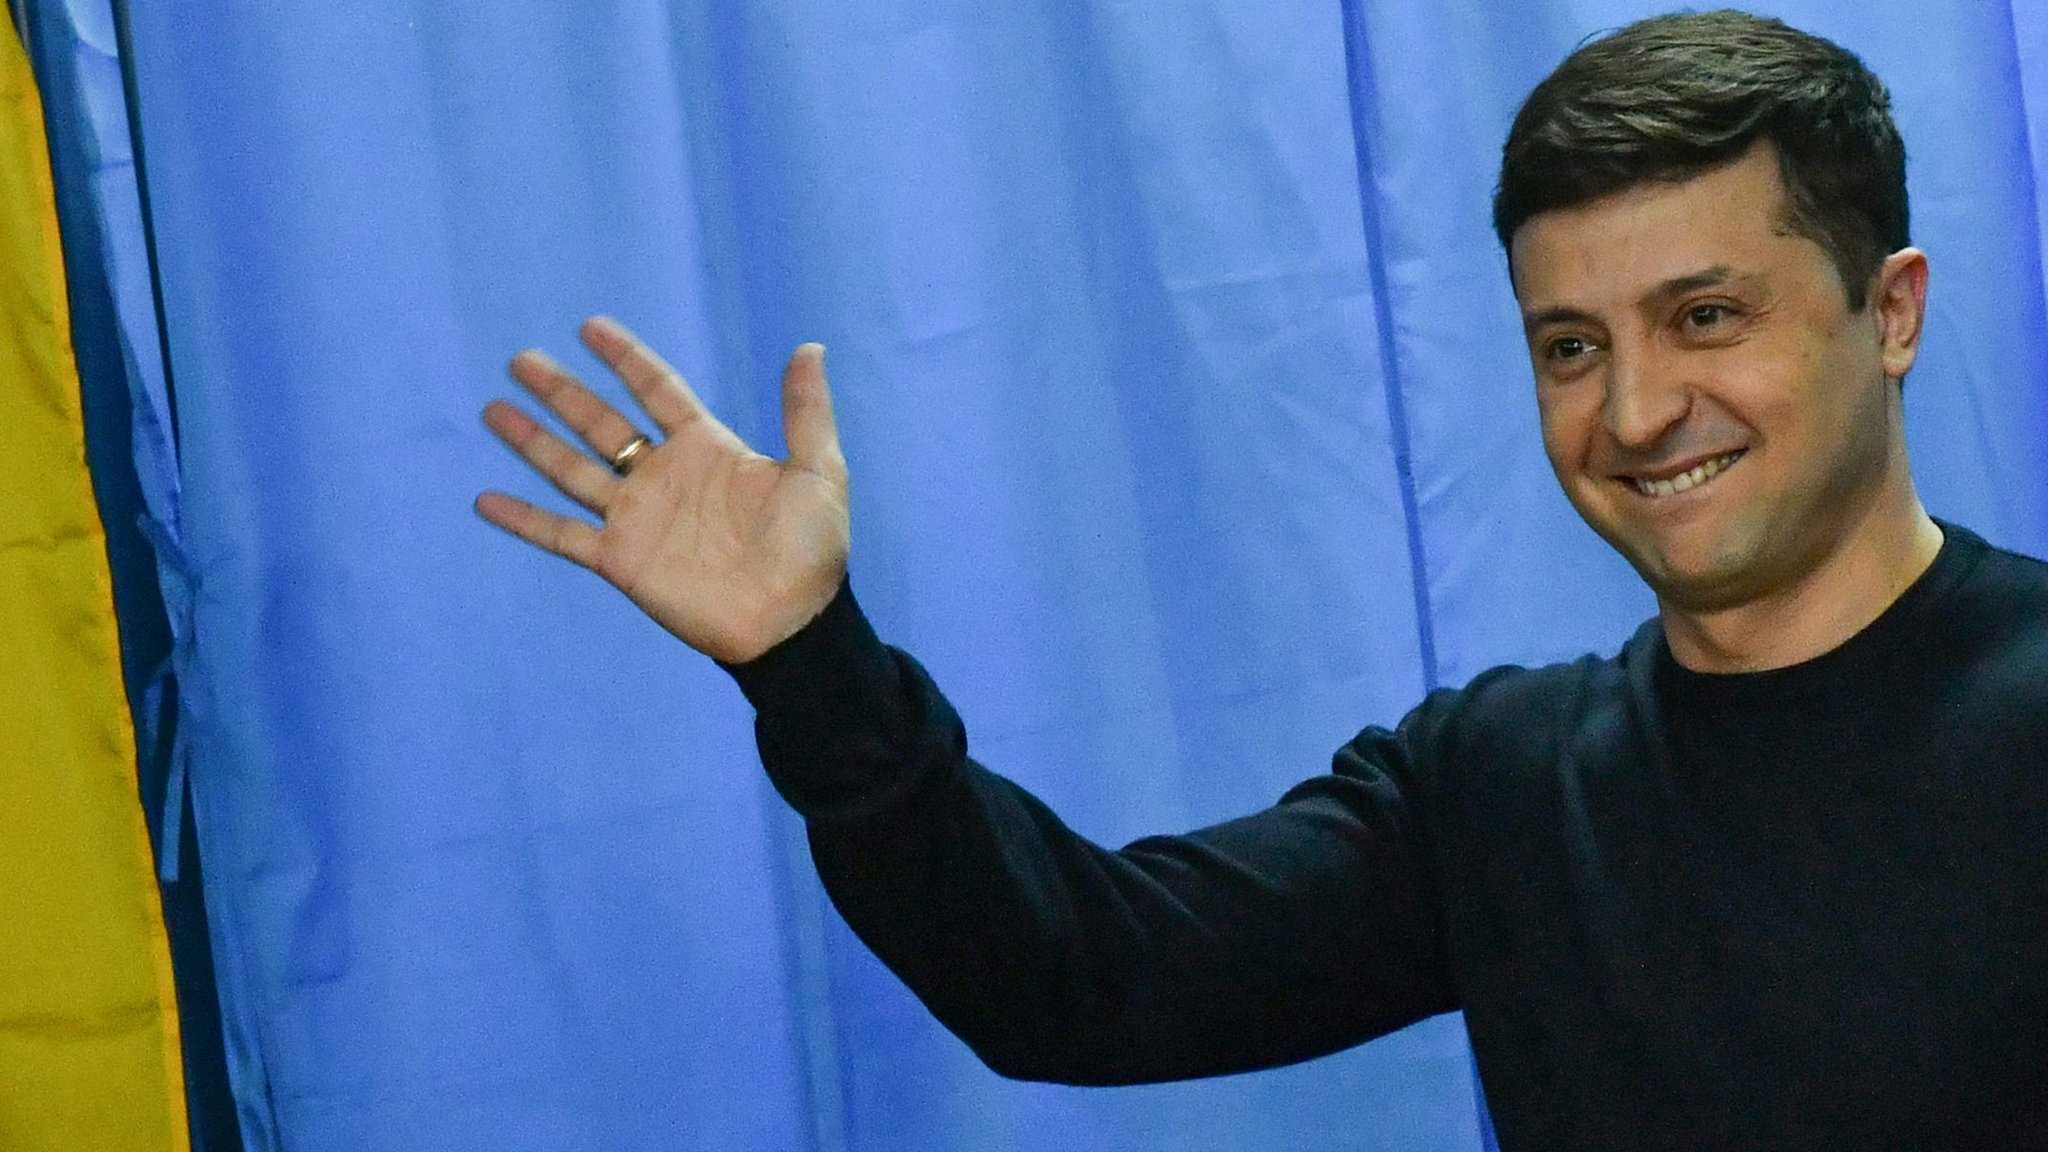 Volodymyr Zelensky: Comedian to be sworn in as Ukrainian president